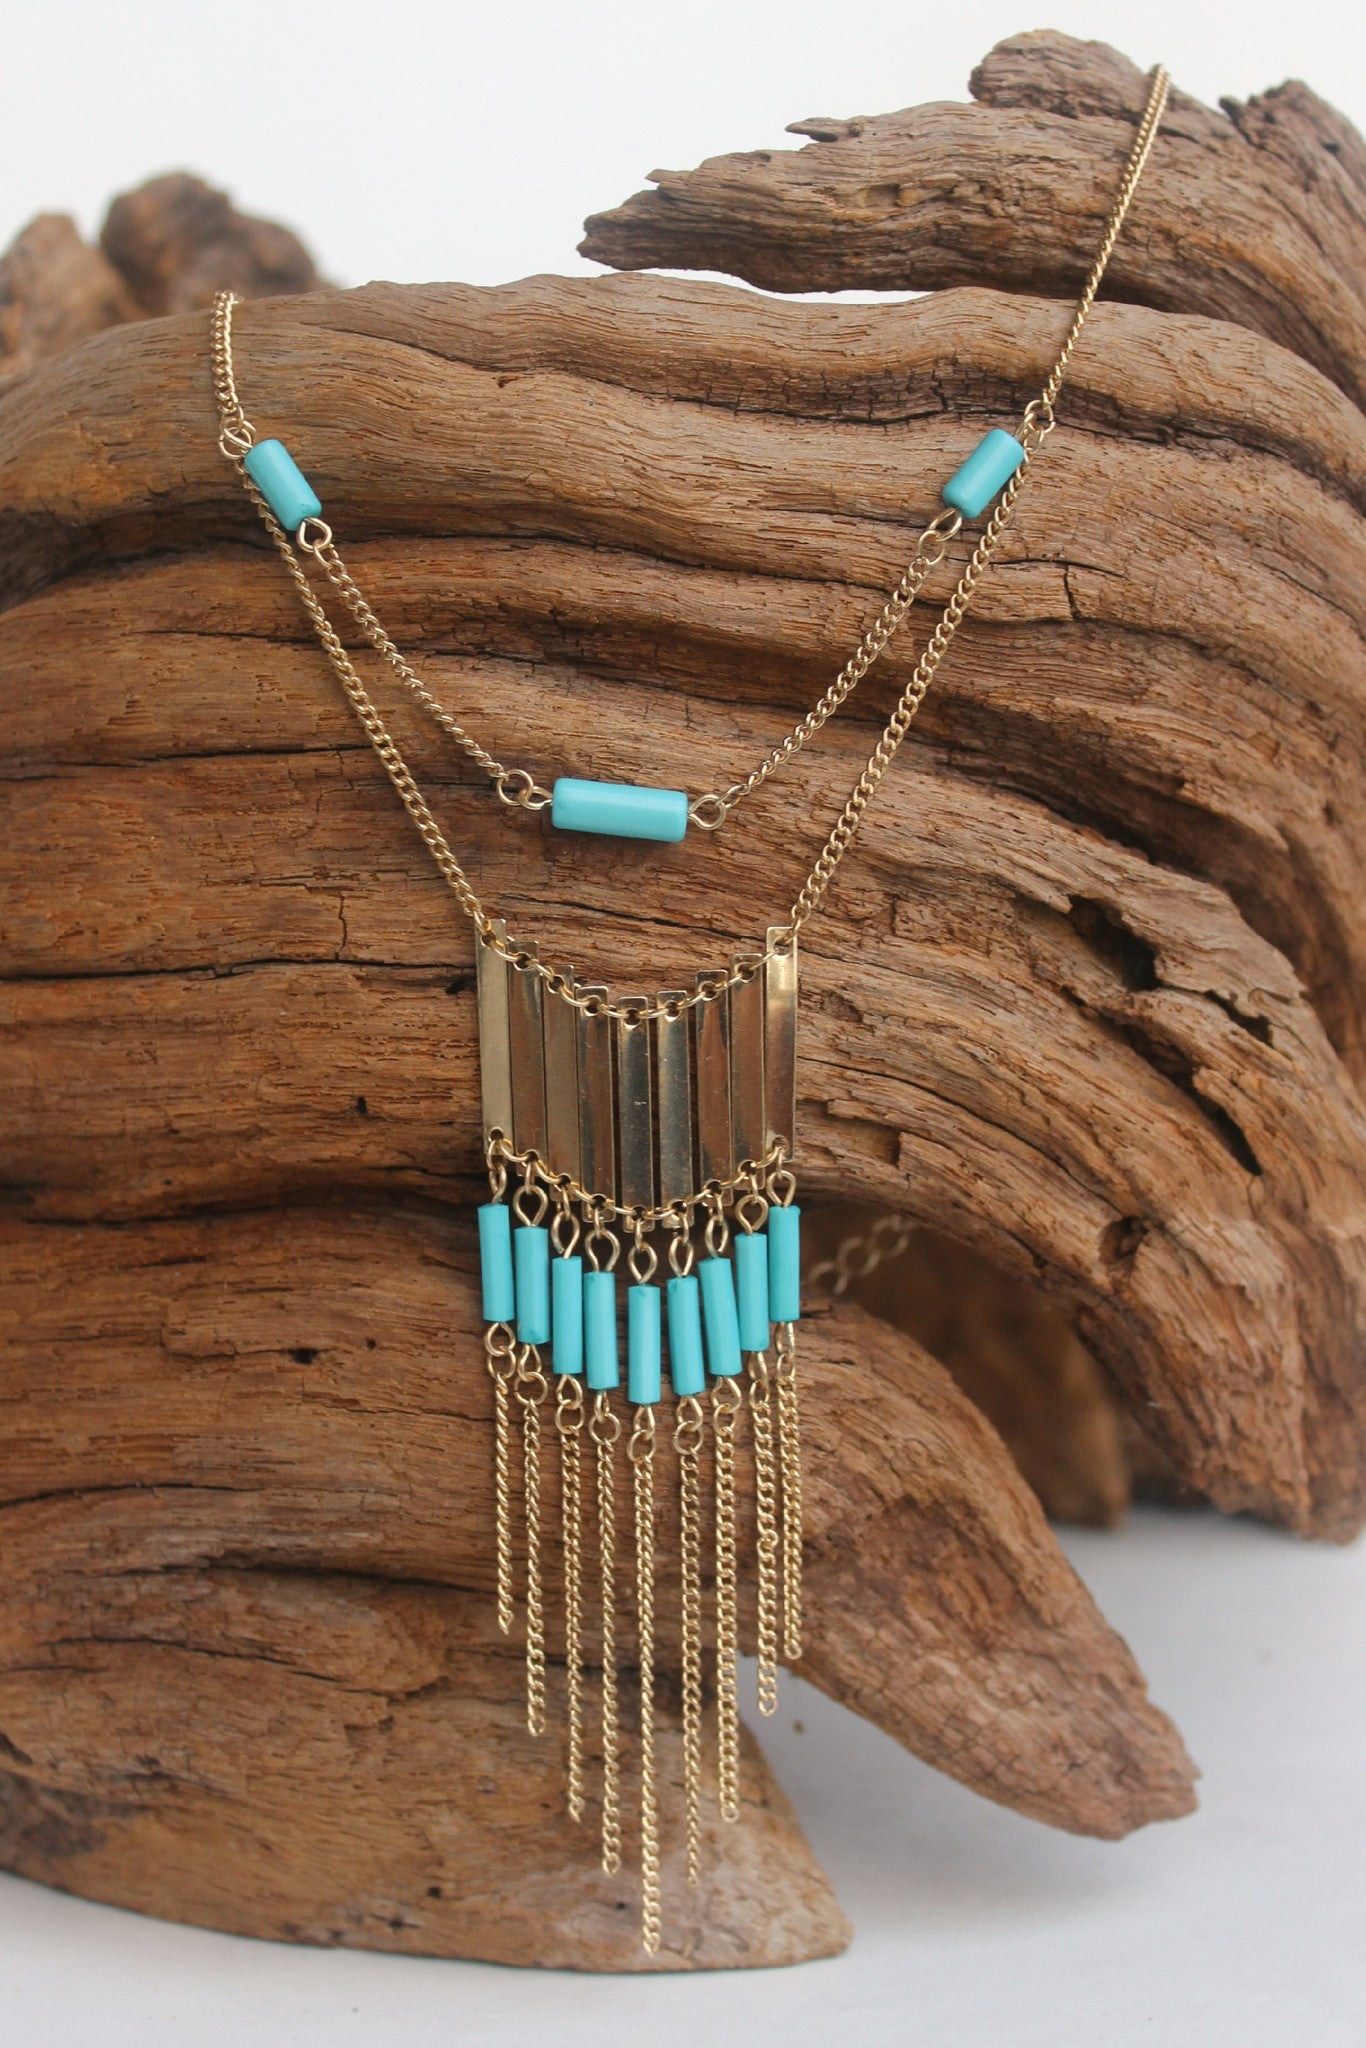 Bars, Beads, and Chains Necklace, Turquoise